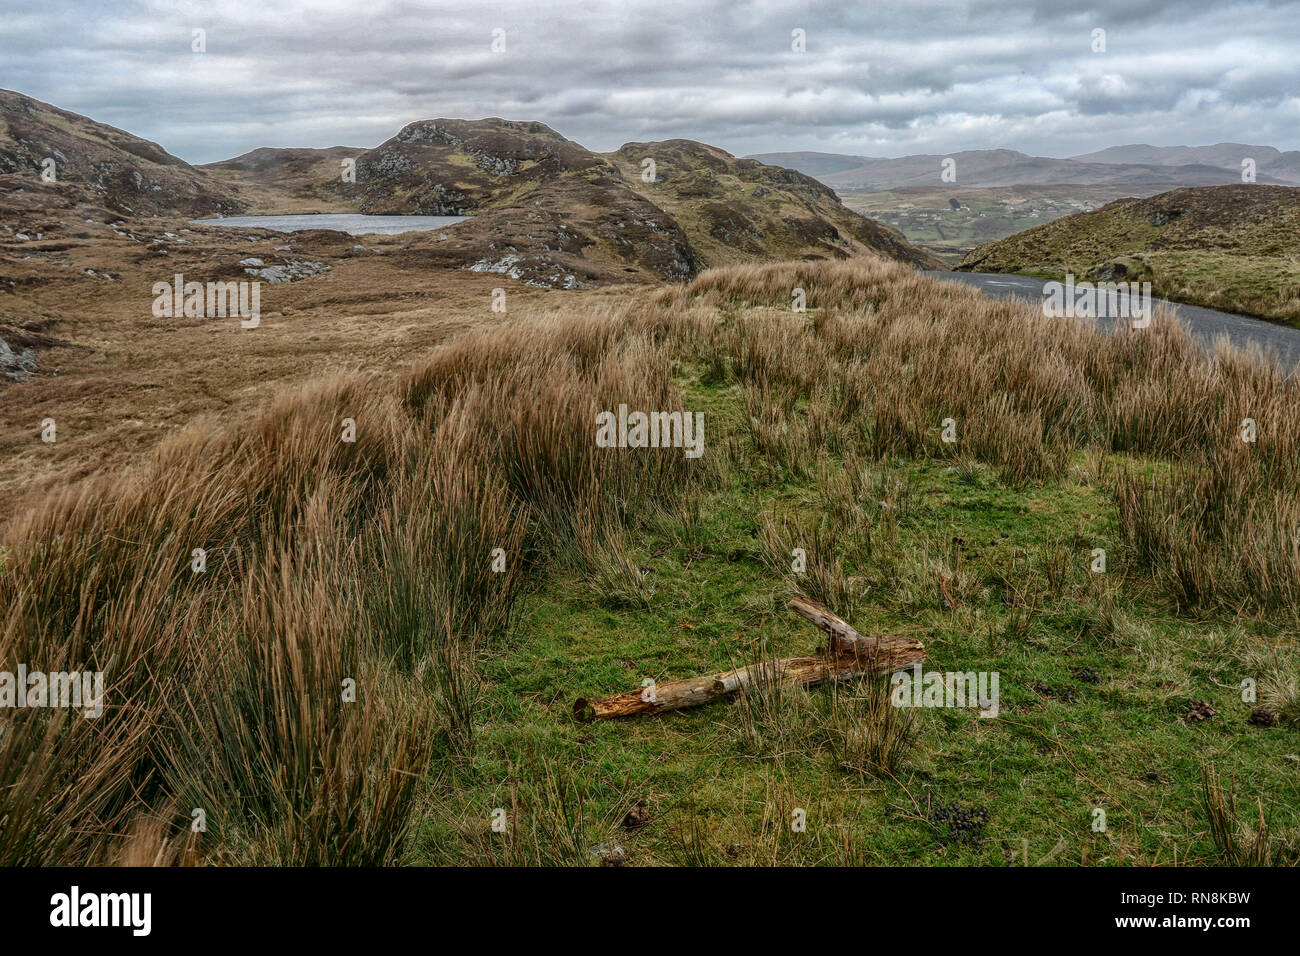 Donegal's beautiful upland wilderness landscape - Stock Image